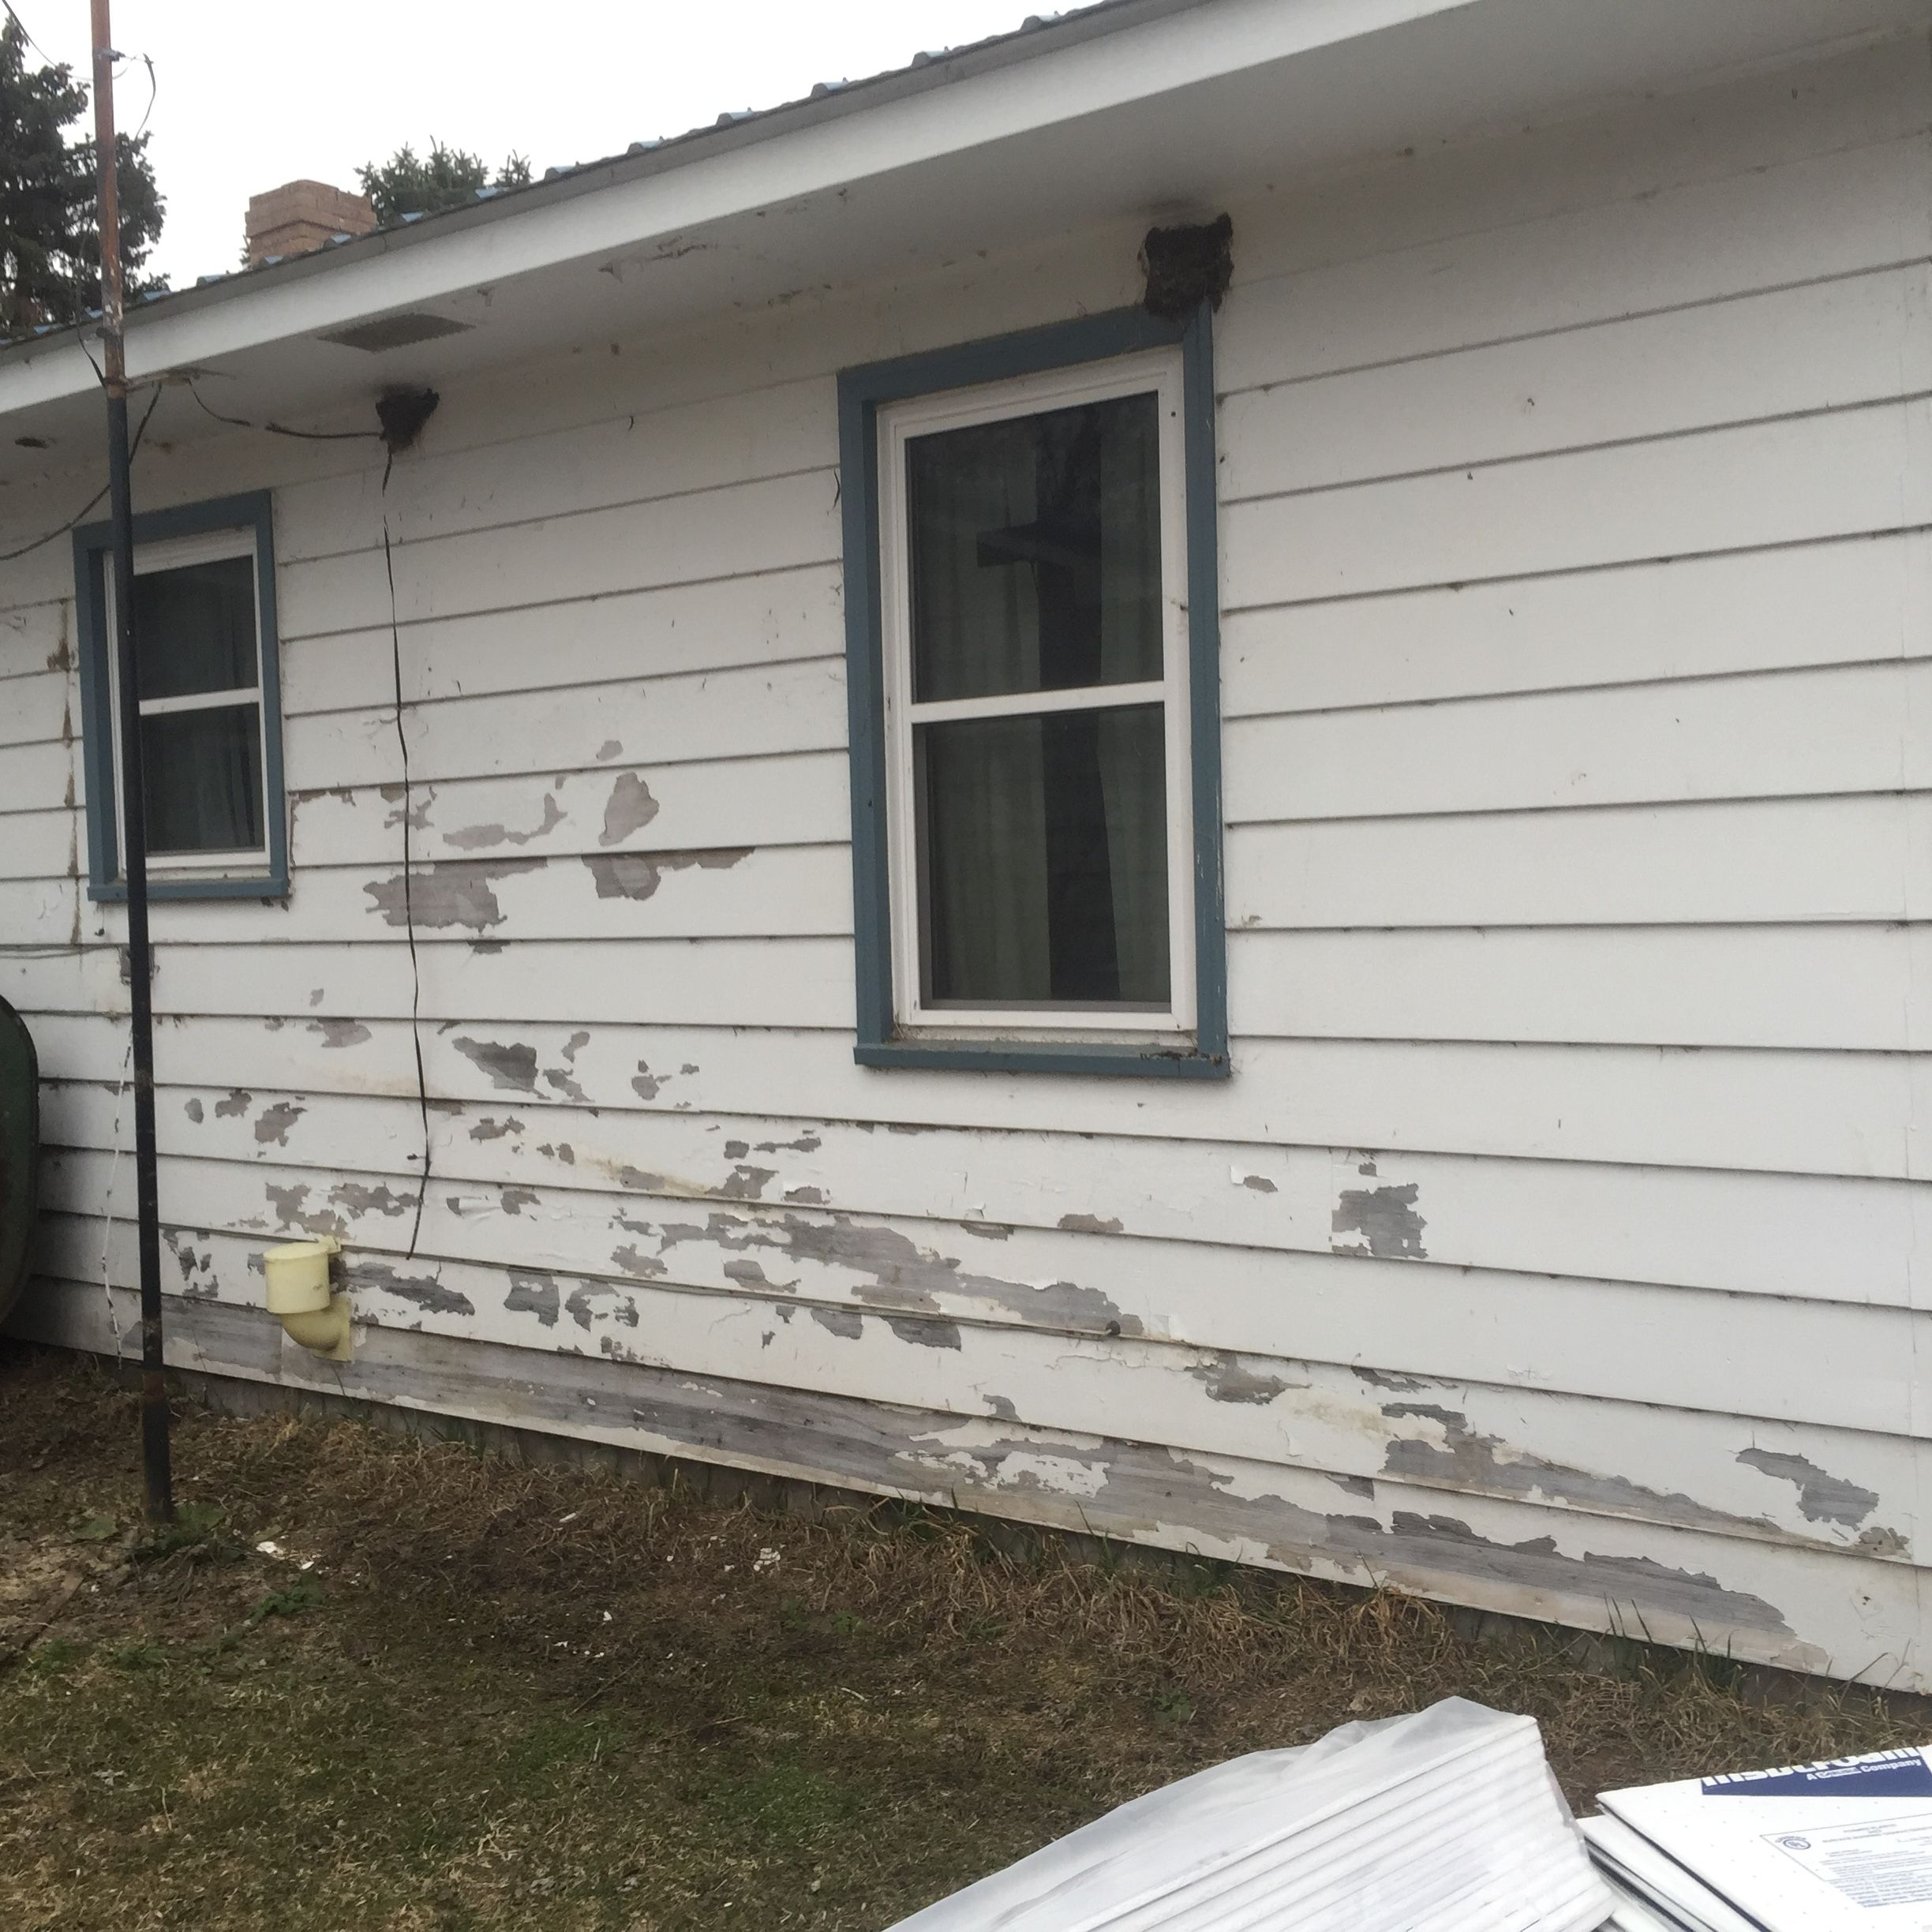 Peeling Paint? Time for an upgrade. Steel siding